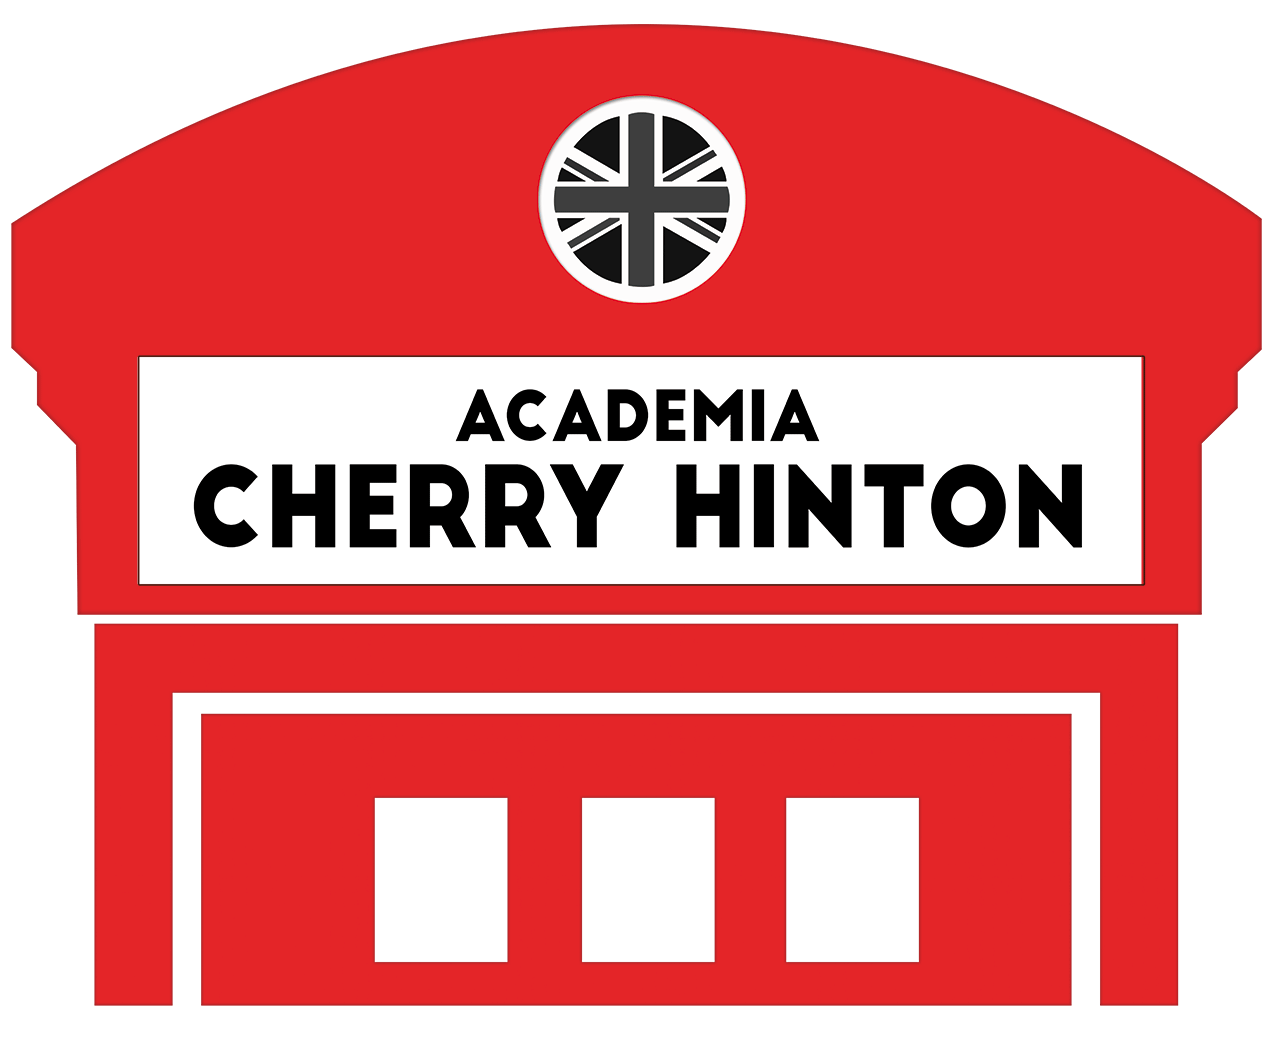 Academia Cherry Hinton